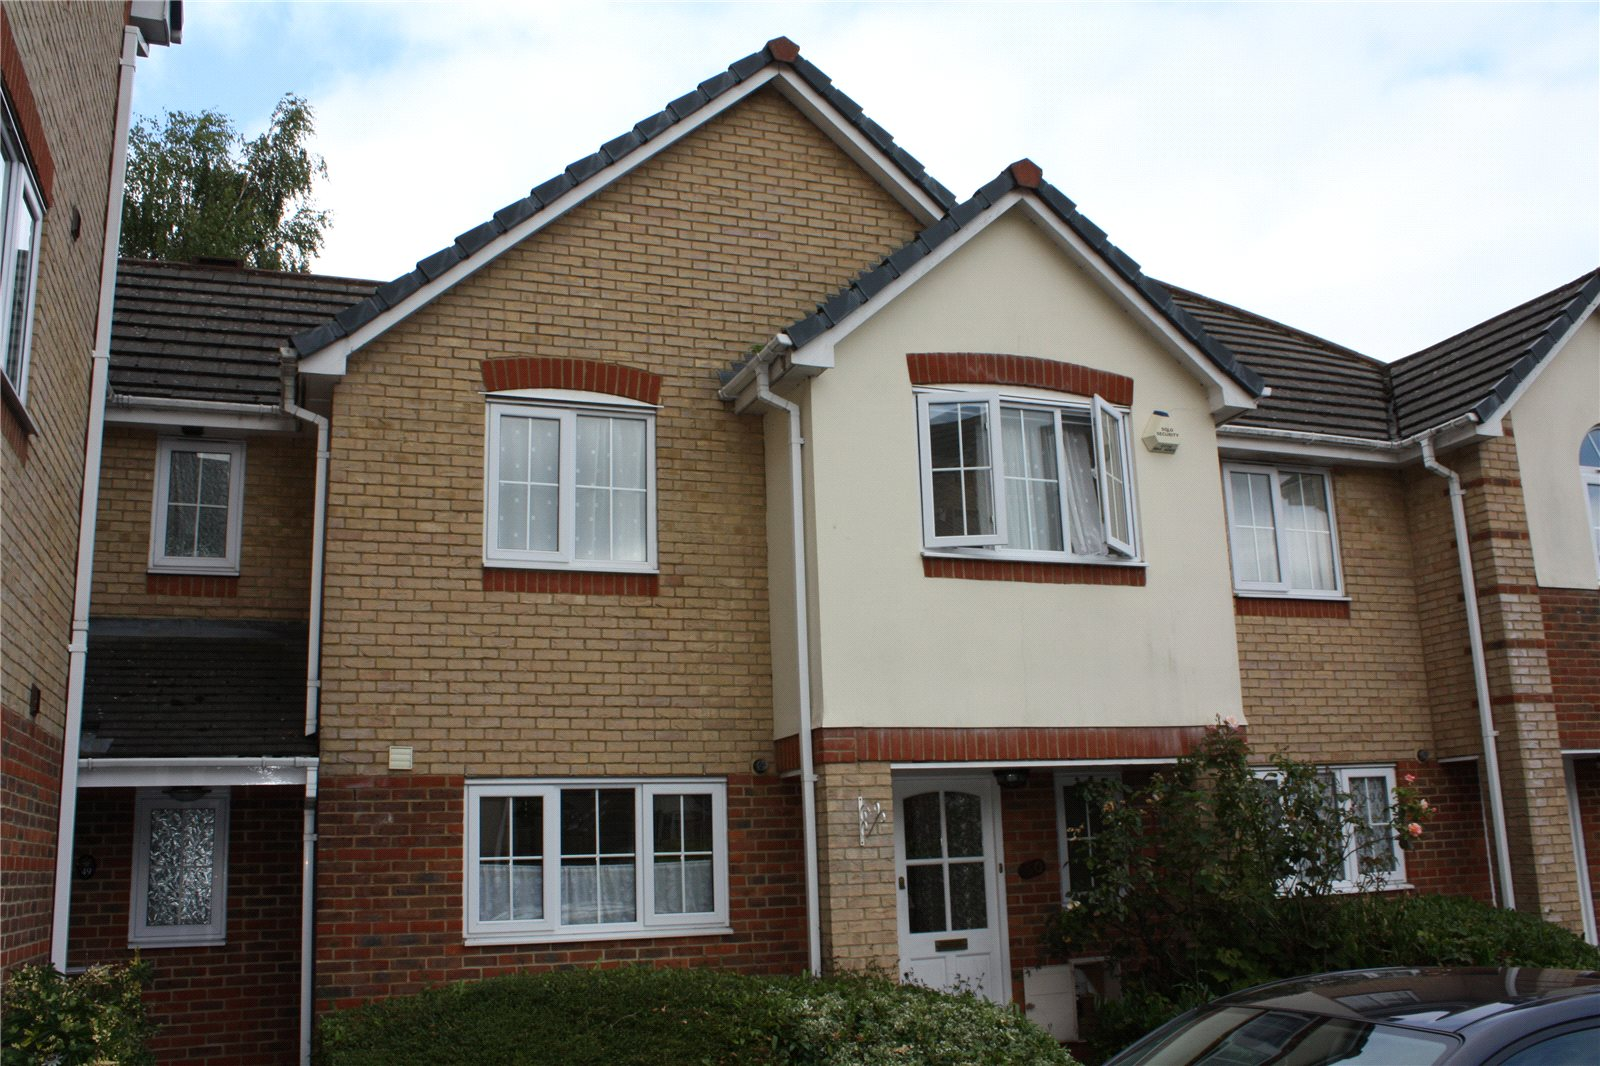 Parkers reading 3 bedroom house to rent in devonshire park - 1 bedroom house to rent in reading ...